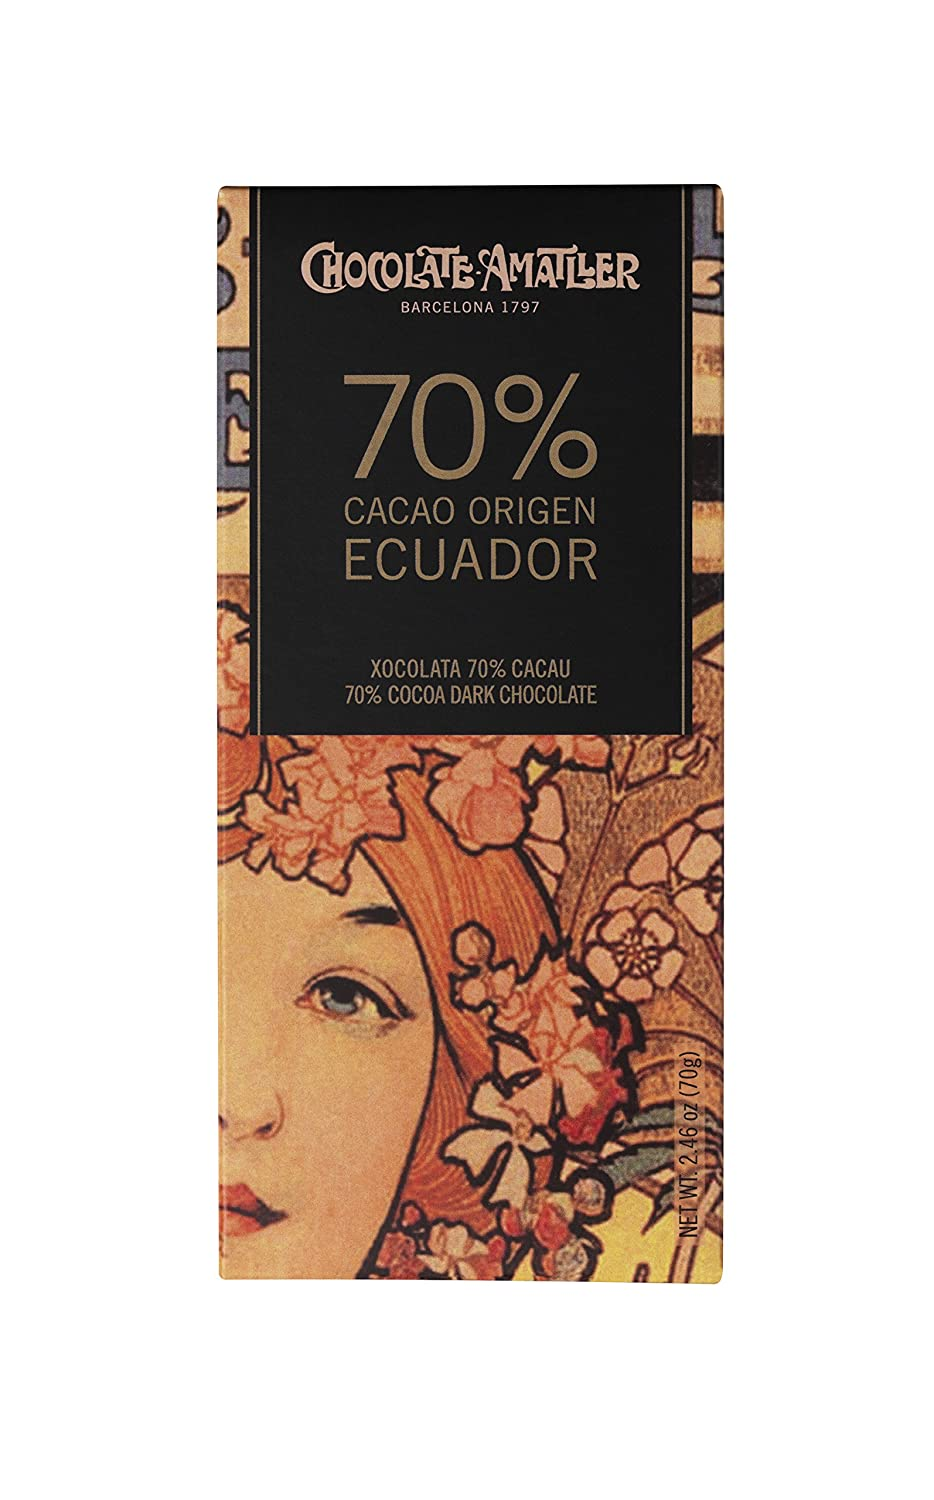 Chocolate Amatller - Tableta de chocolate (70% cacao Ecuador) - 30 tabletas de 70 gr. (Total 2100 gr.): Amazon.es: Alimentación y bebidas